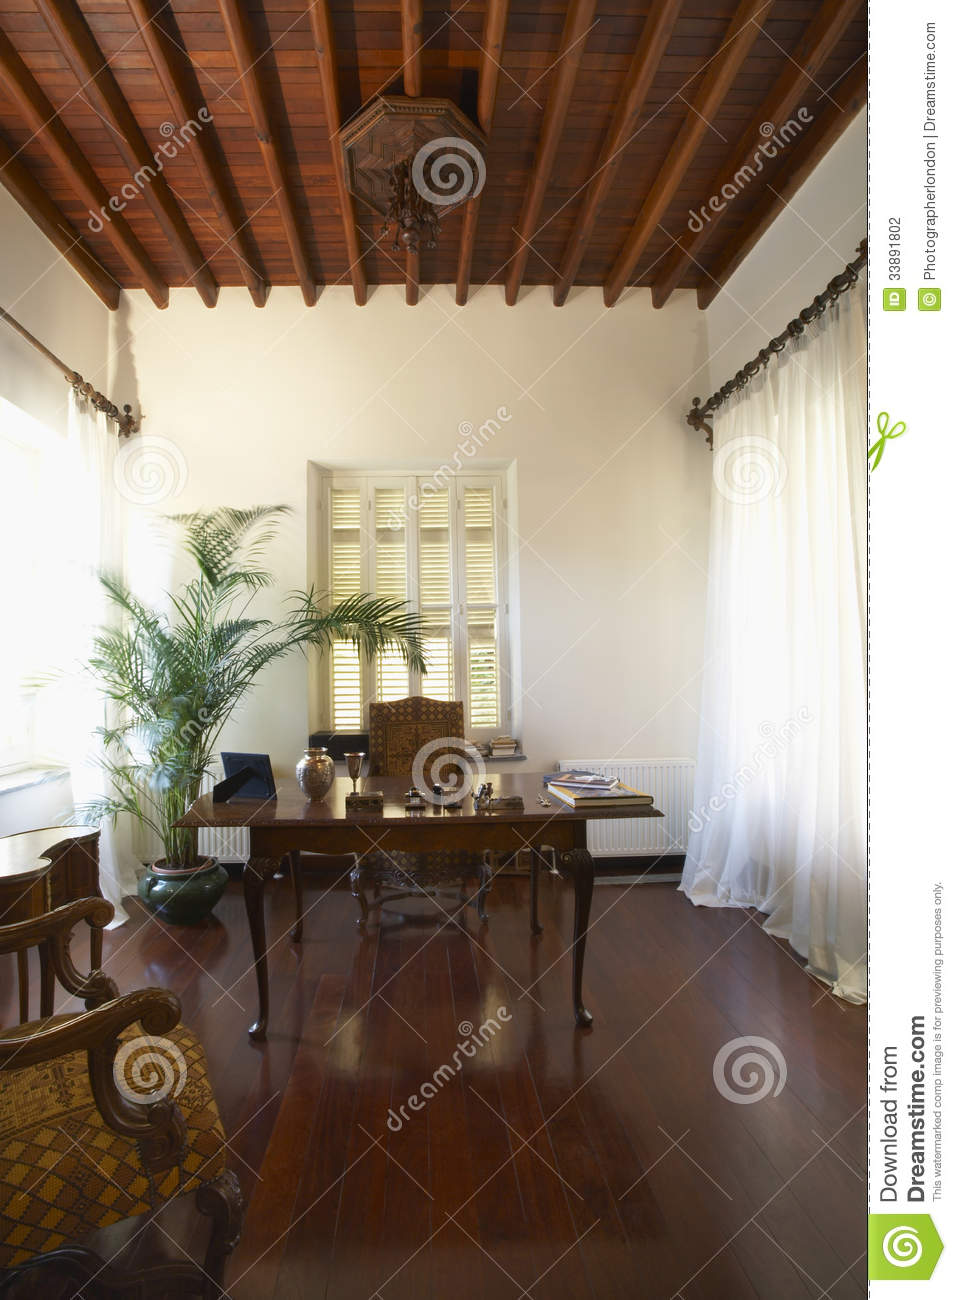 Home Office On Hardwood Floor Stock Photo Image 33891802